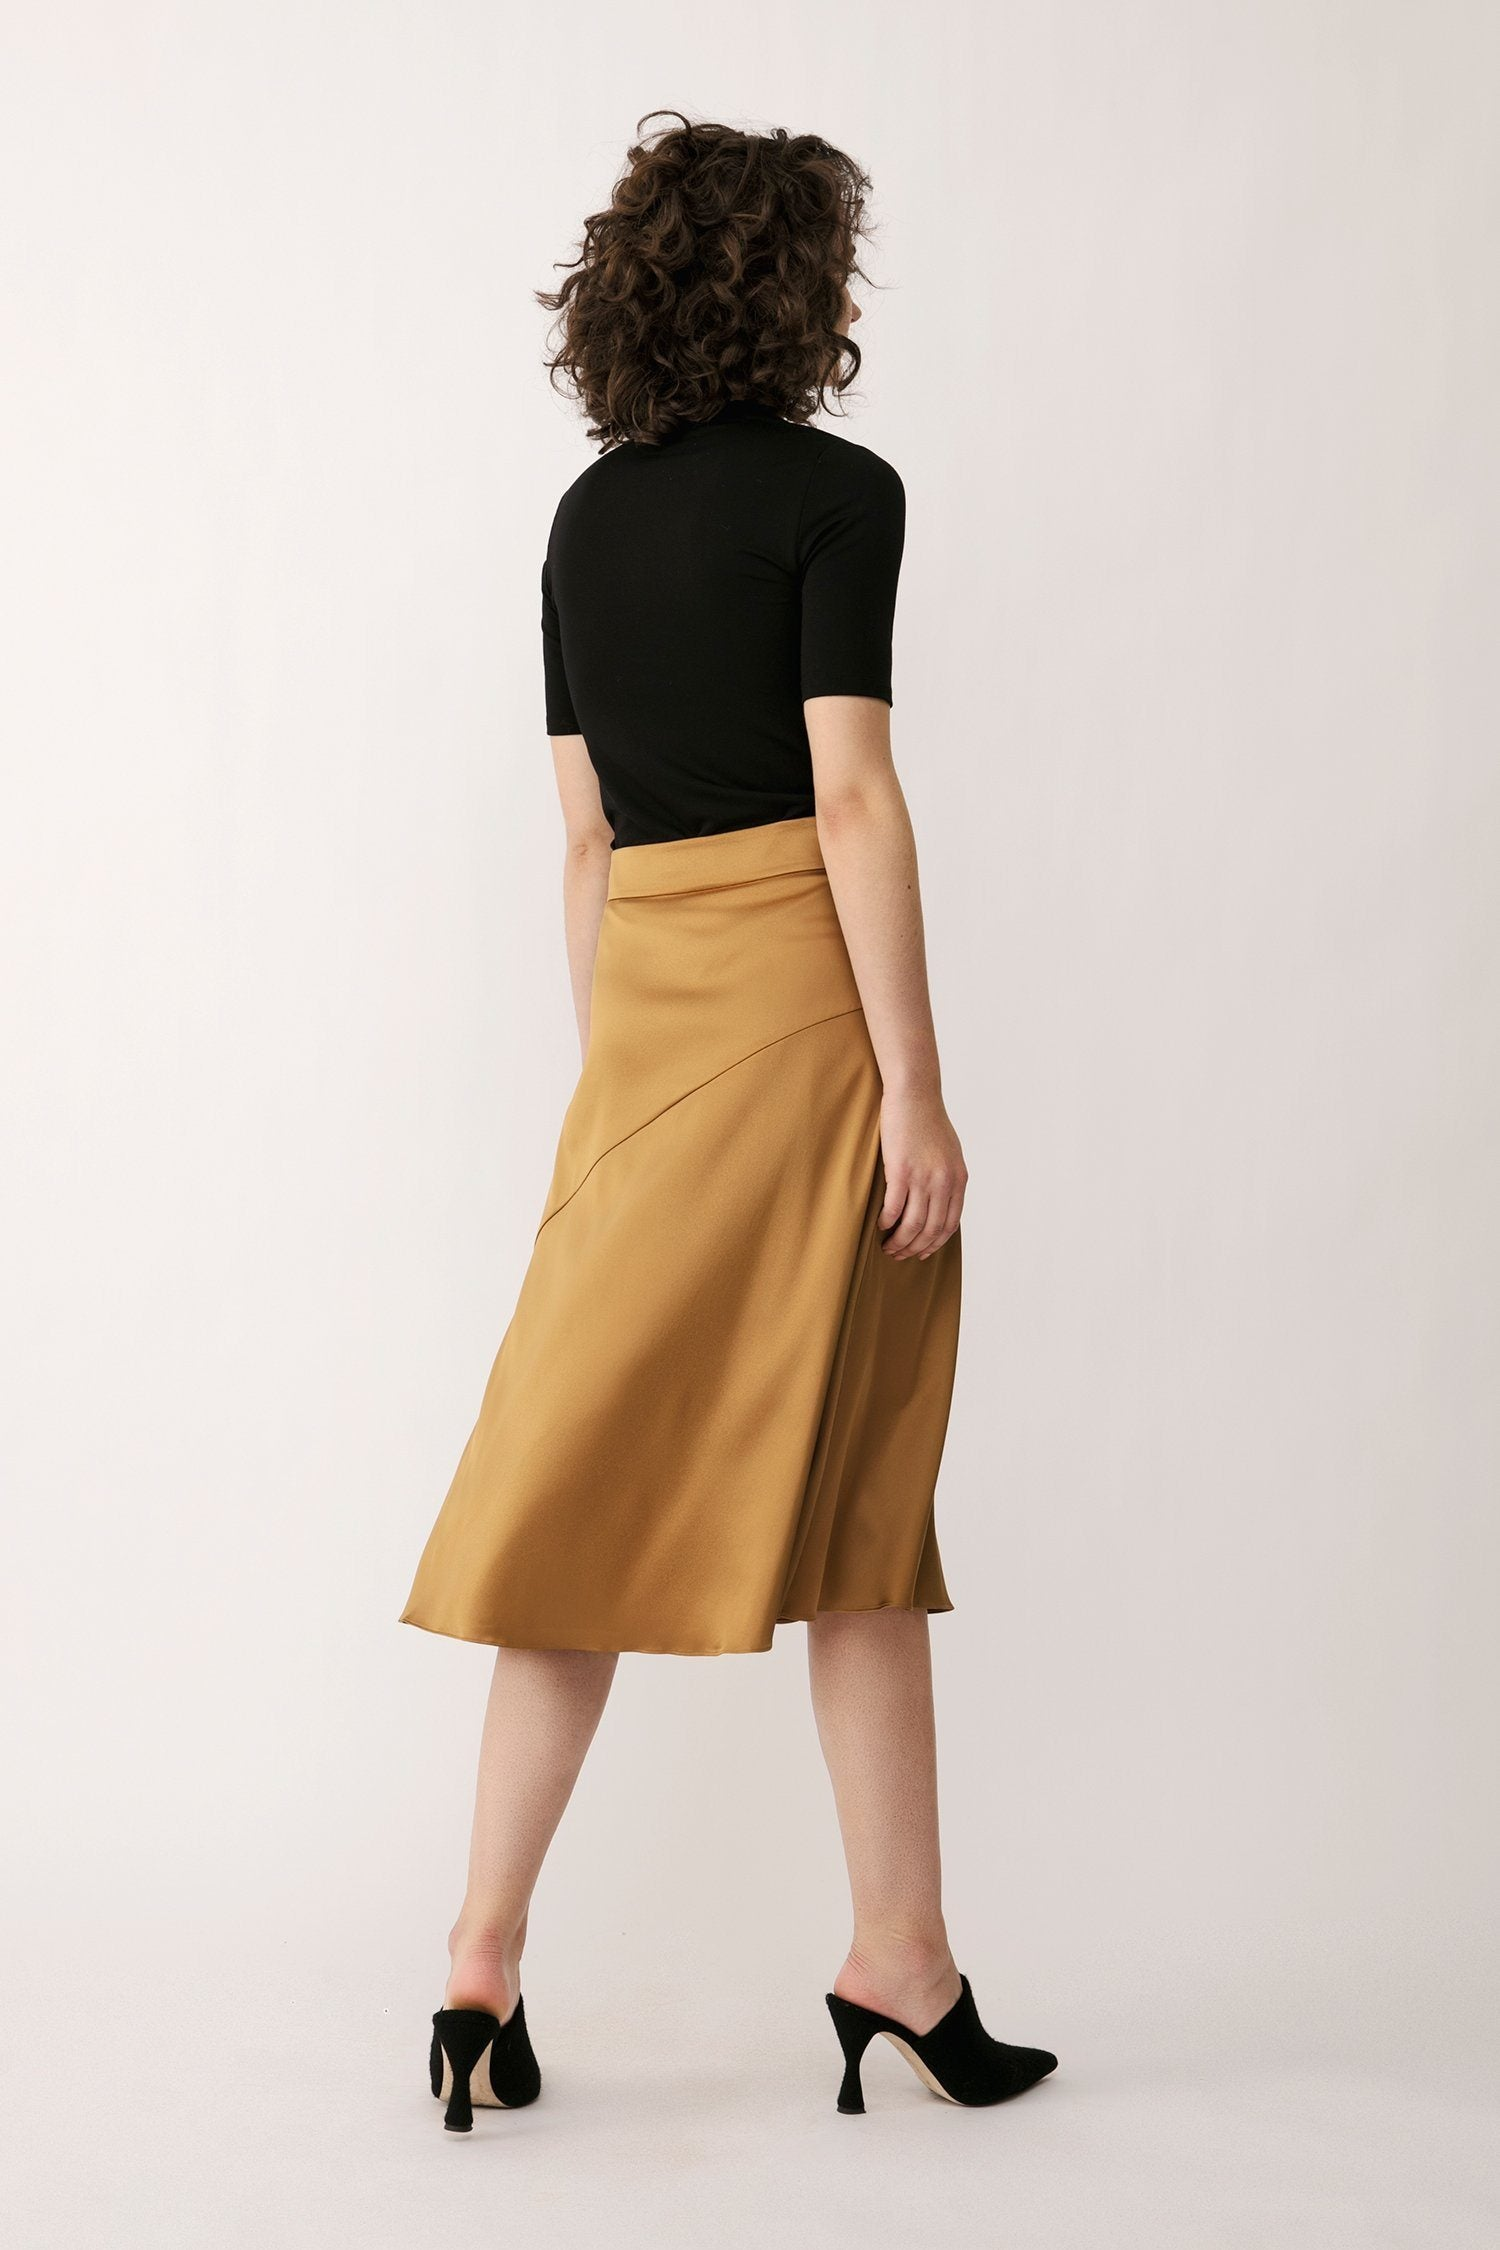 MONA SKIRT - BRONZE ONLINE EXCLUSIVE Skirt Stylein